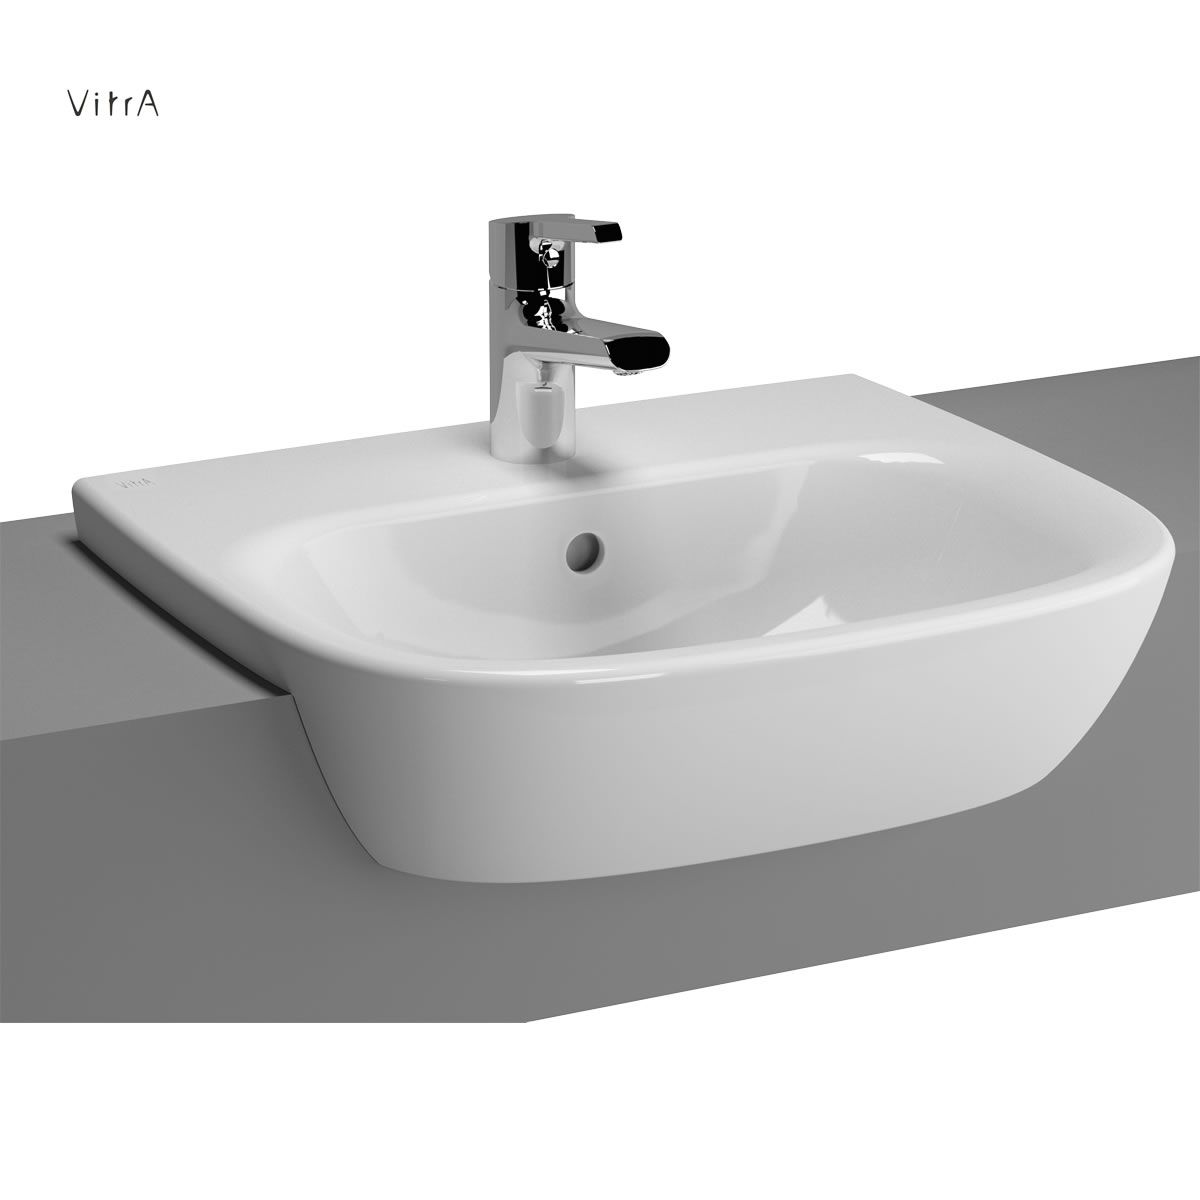 vitra zentrum semi recessed basin 50cm uk bathrooms. Black Bedroom Furniture Sets. Home Design Ideas